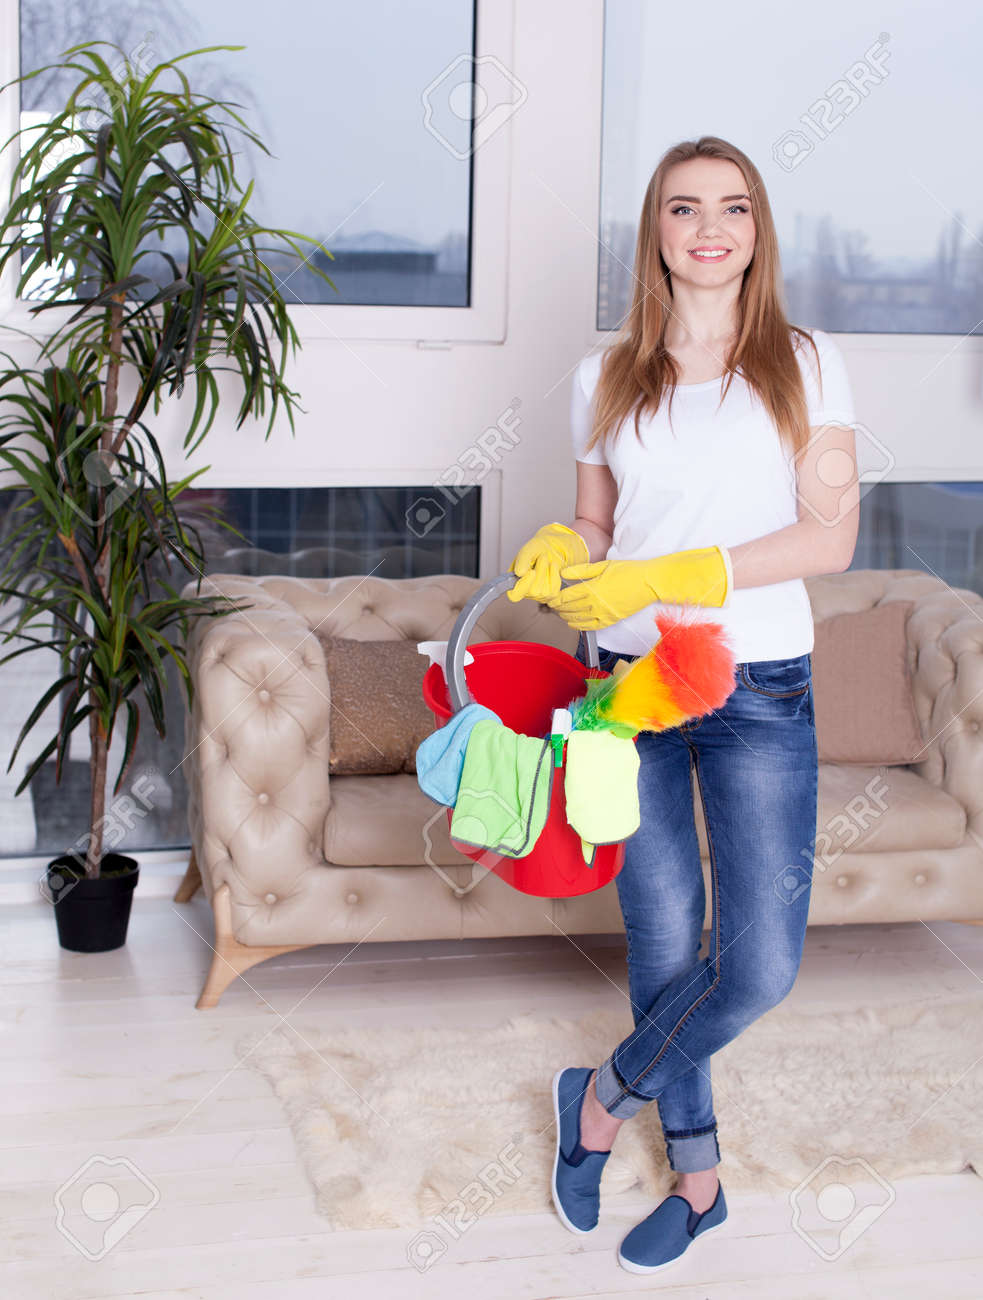 Smiling woman housewife with bucket and cleaning things - 75270585